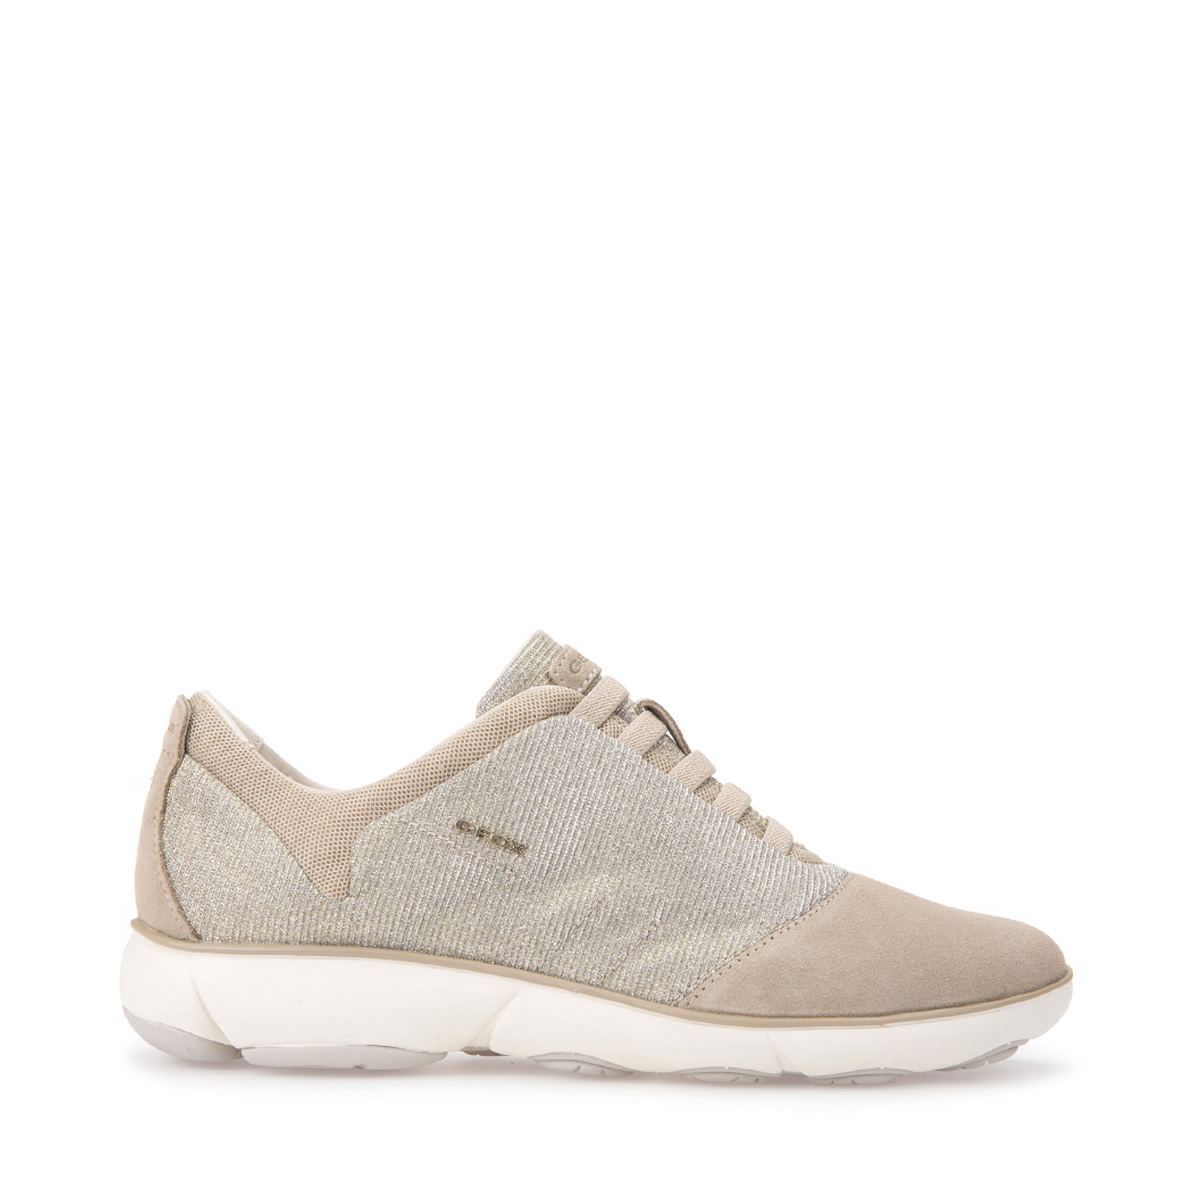 Geox Nebula Beige Donna,Sneakers scontate